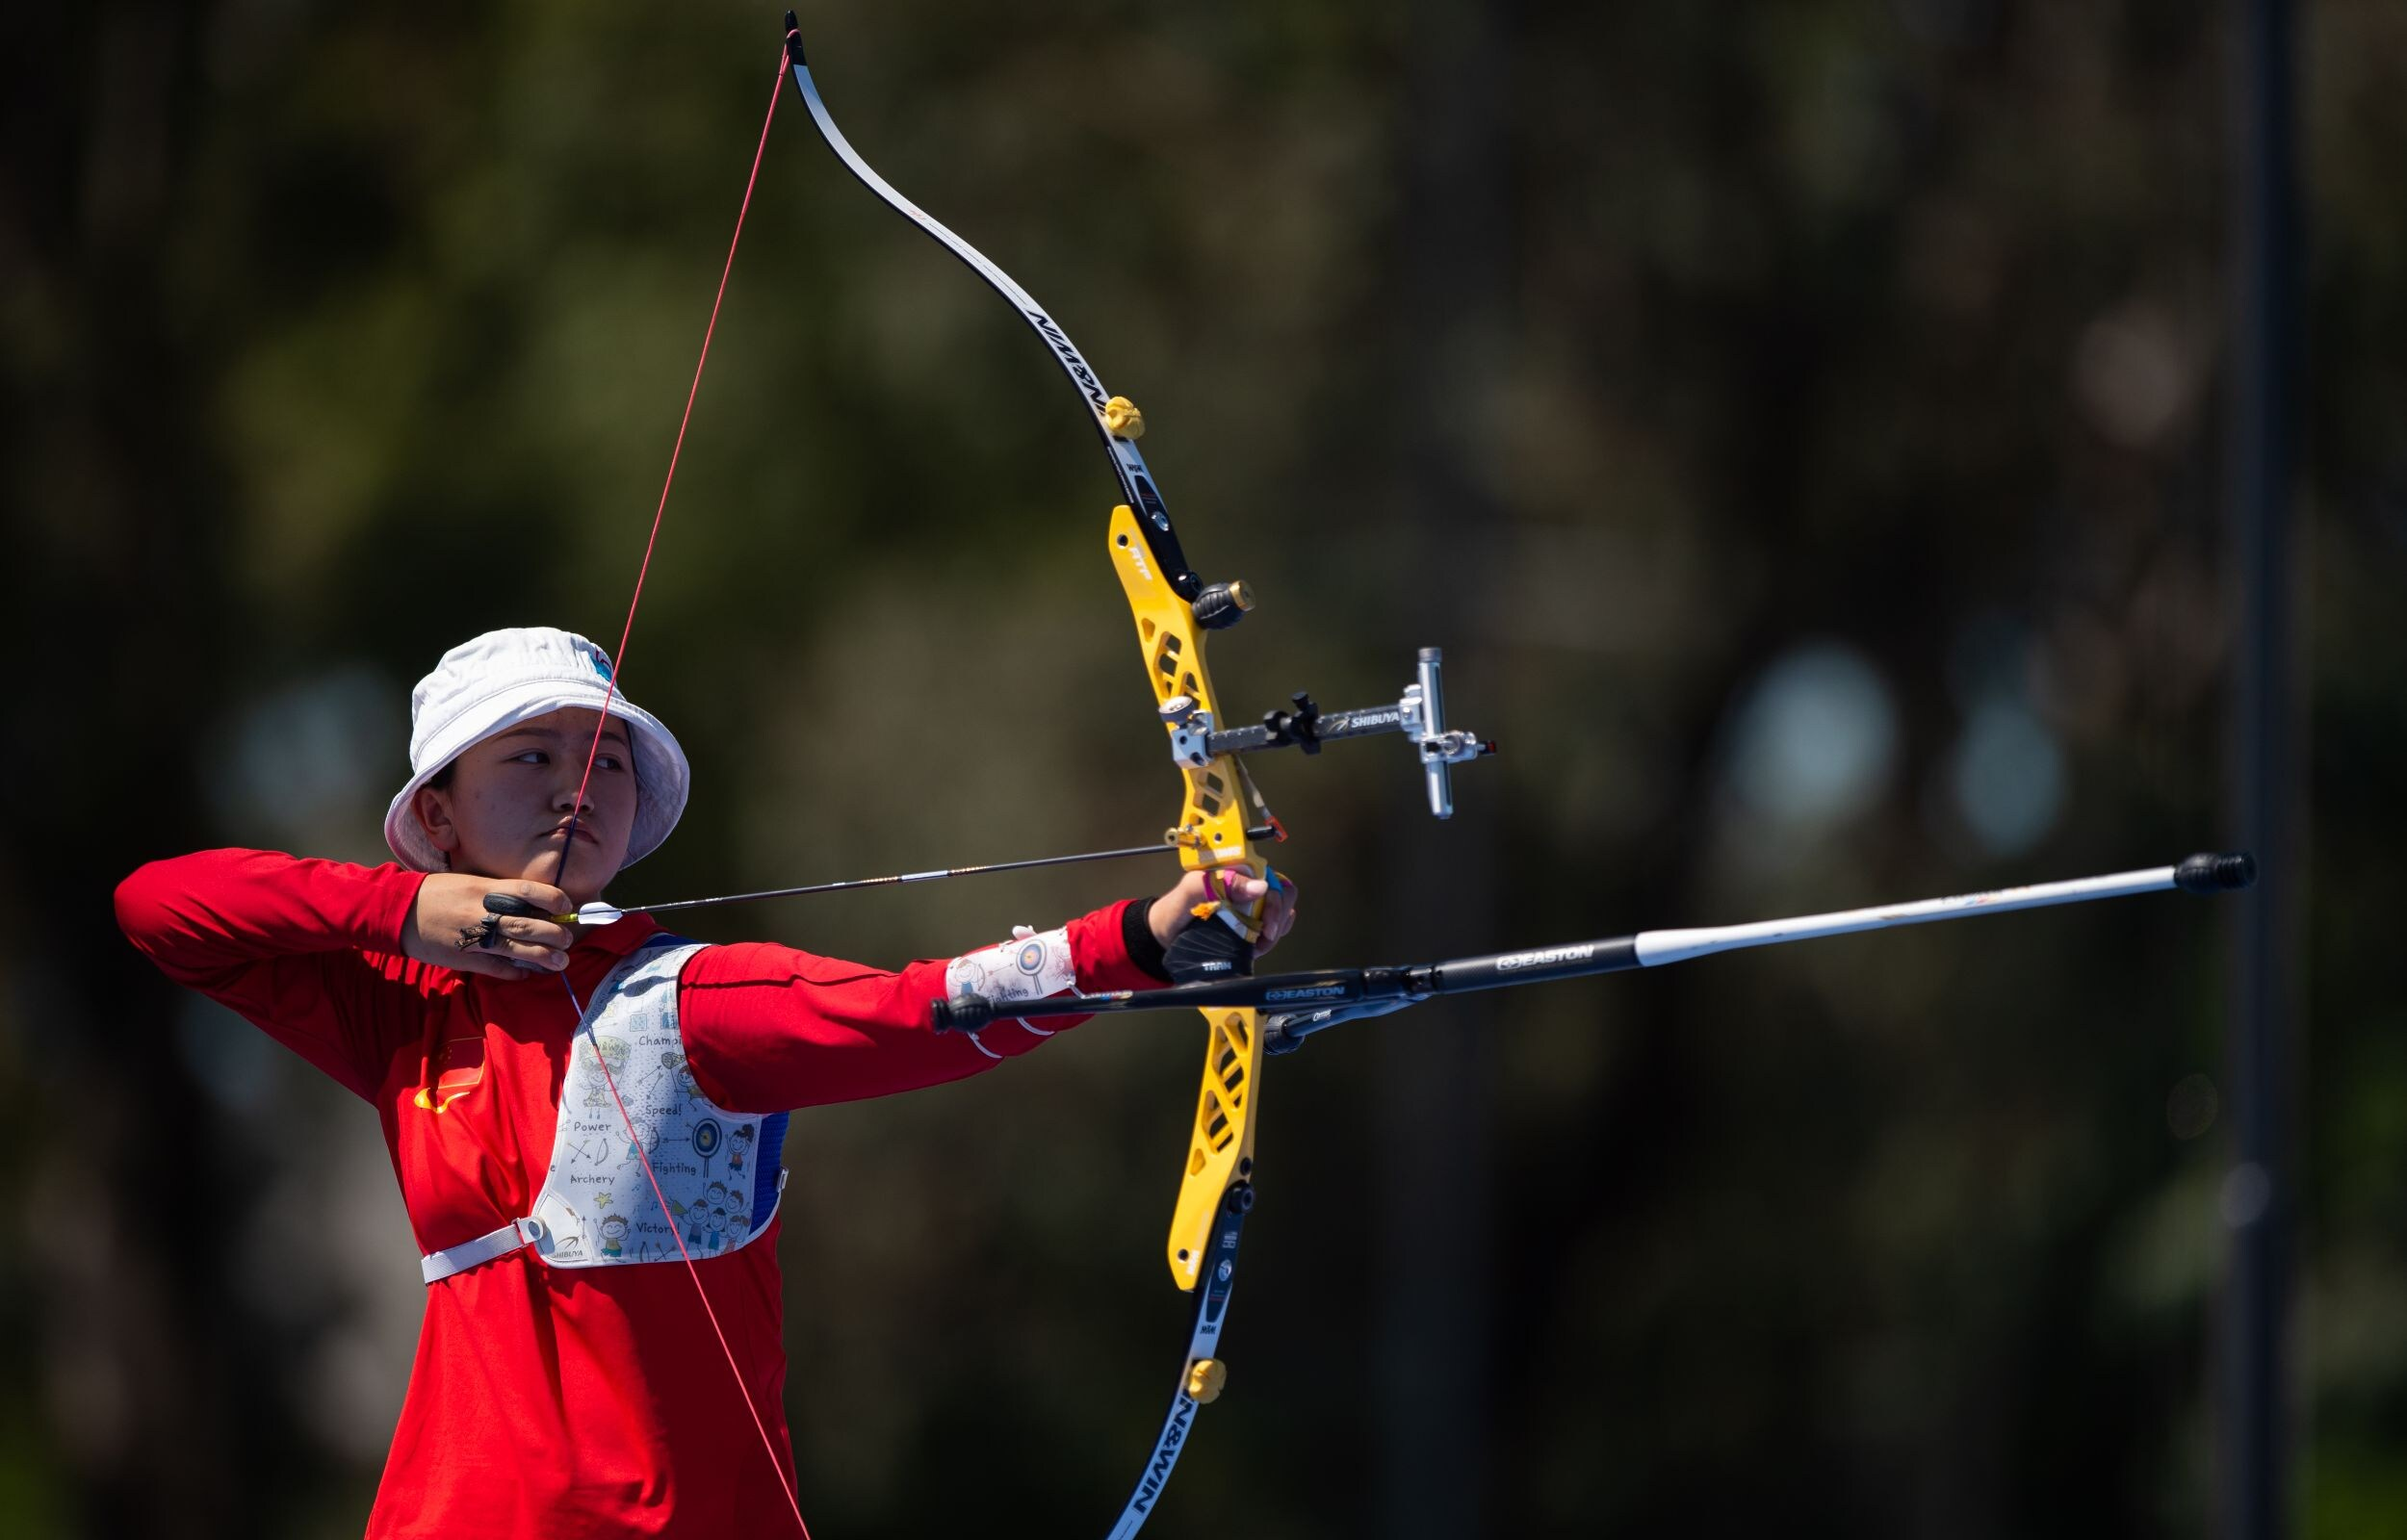 Buenos Aires 2018 - Archery - Women's Recurve Individual